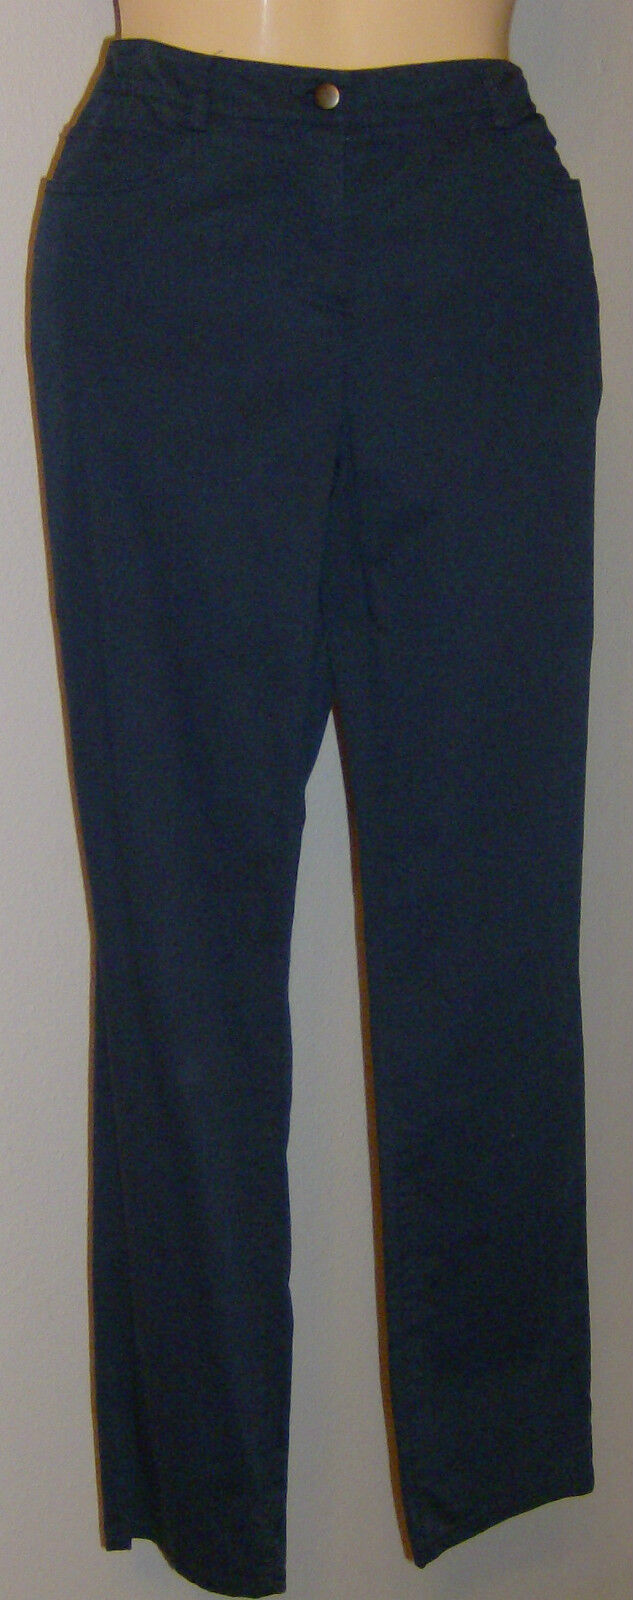 Eileen Fisher  Pants NWT Lean Jean Indigo Size Small  Washable Cotton Spndx